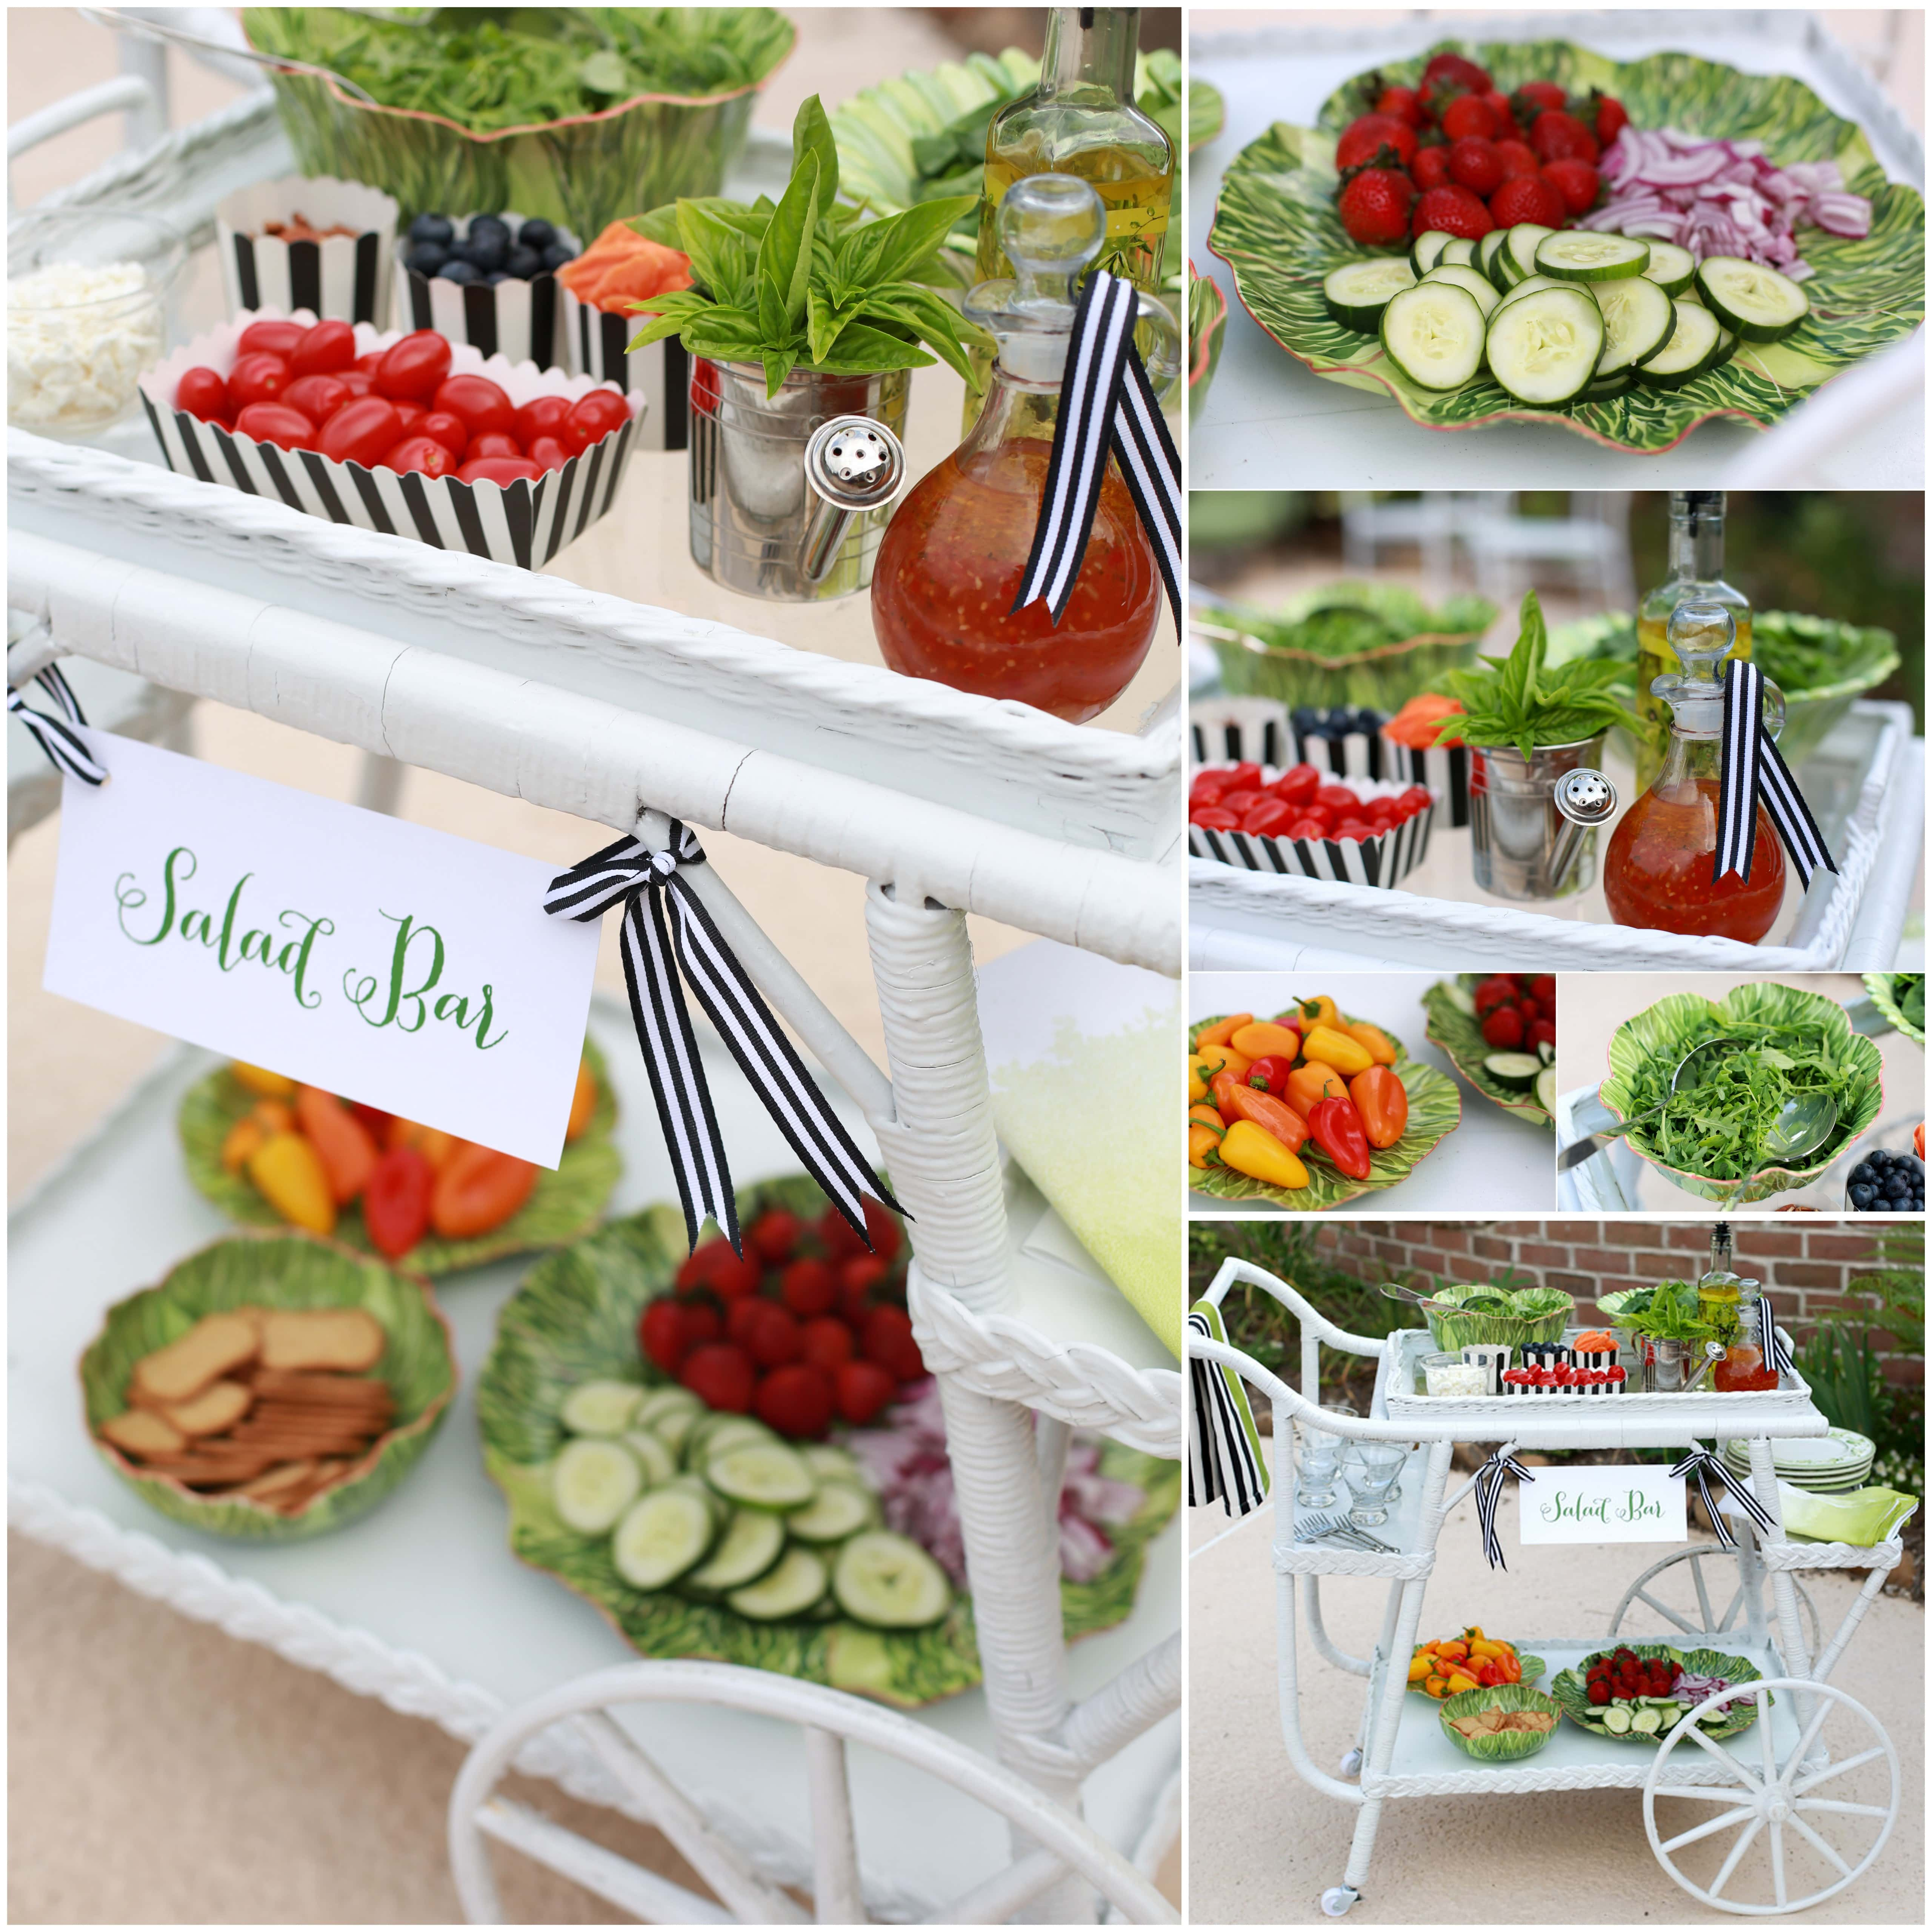 Build a Summer Salad Bar! Idea to SAVE!